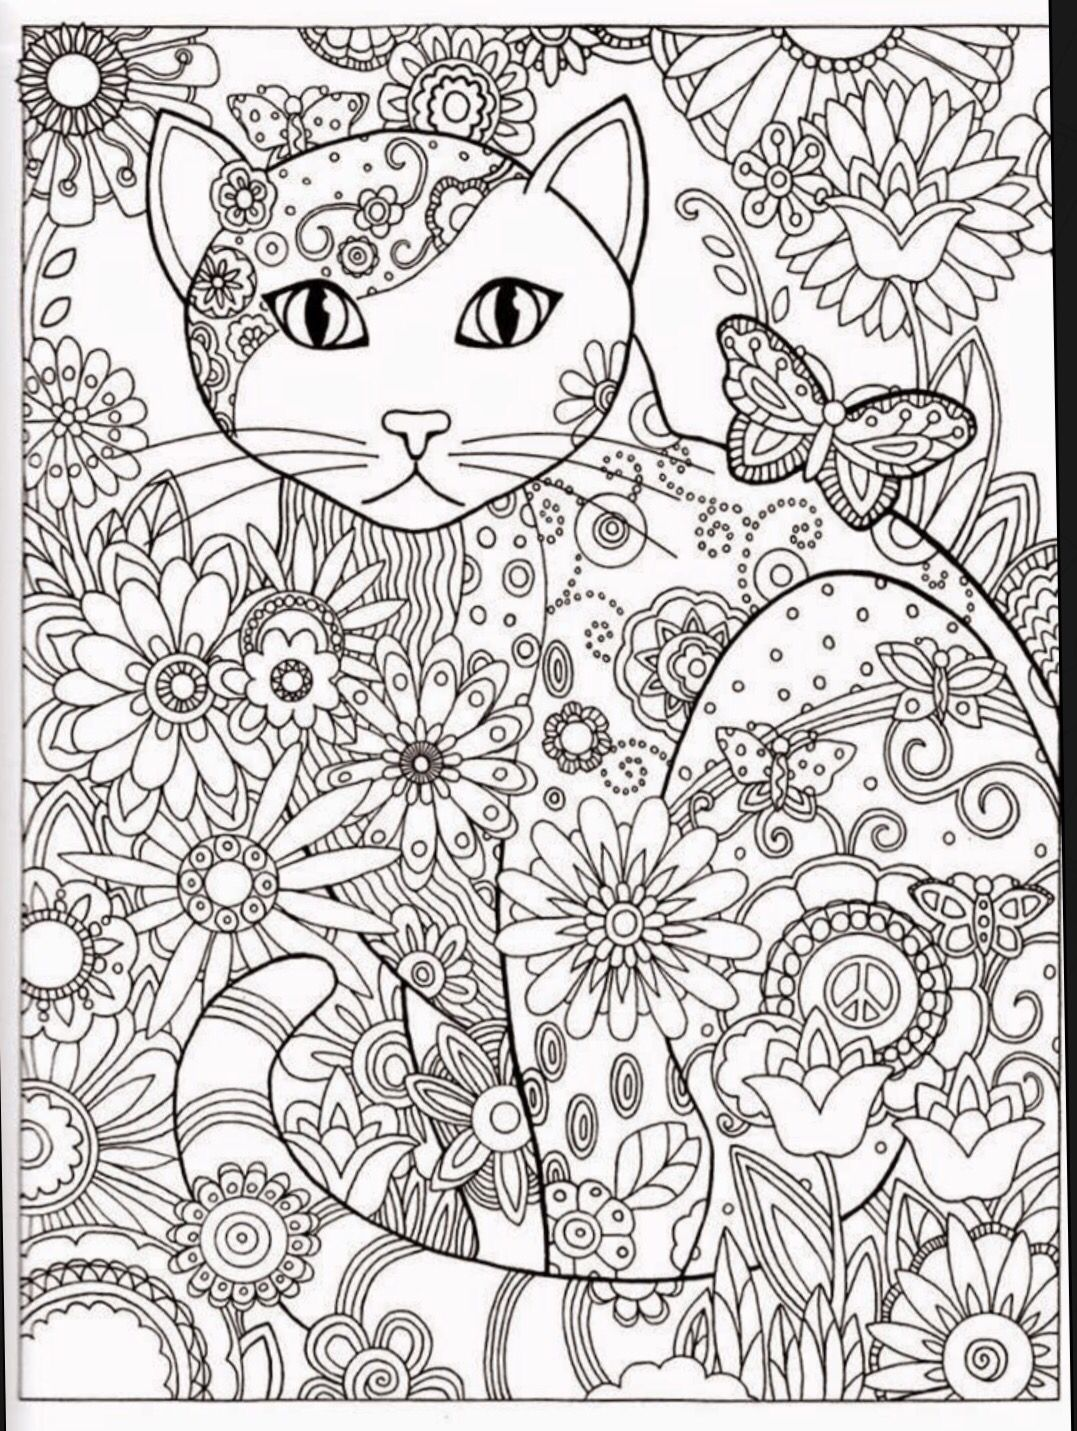 Free Printable Coloring Pages Adult Sheets Books Colouring Craft Rooms Zentangles Fun Stuff Doodles